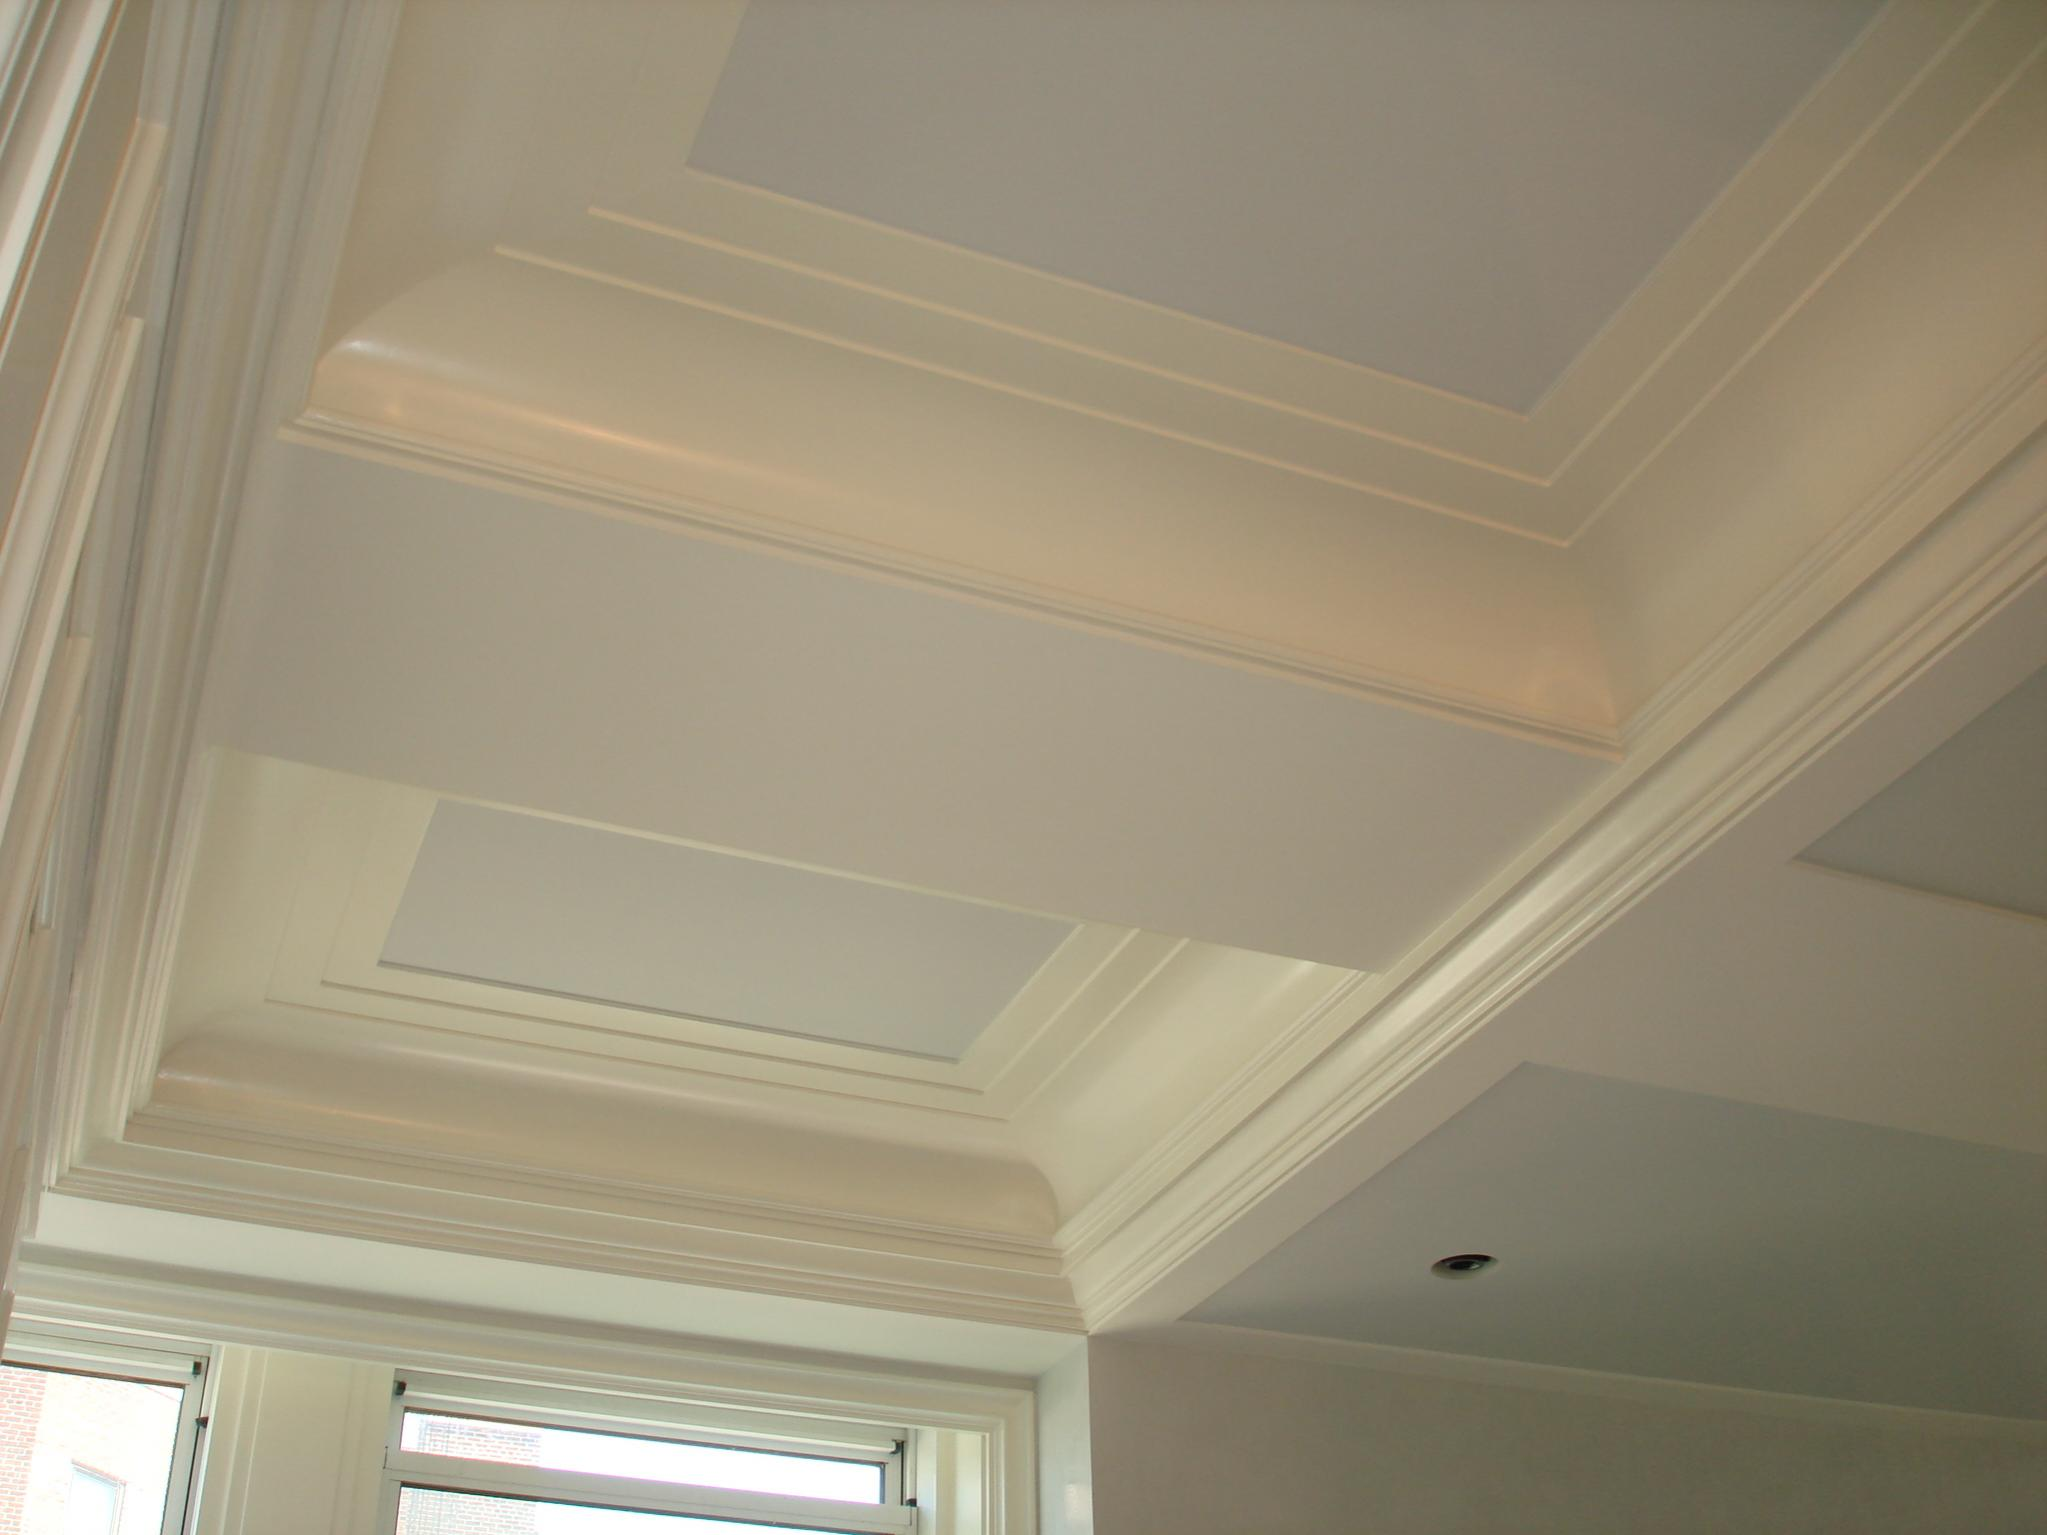 High Gloss Ceilings Painting Amp Finish Work Contractor Talk